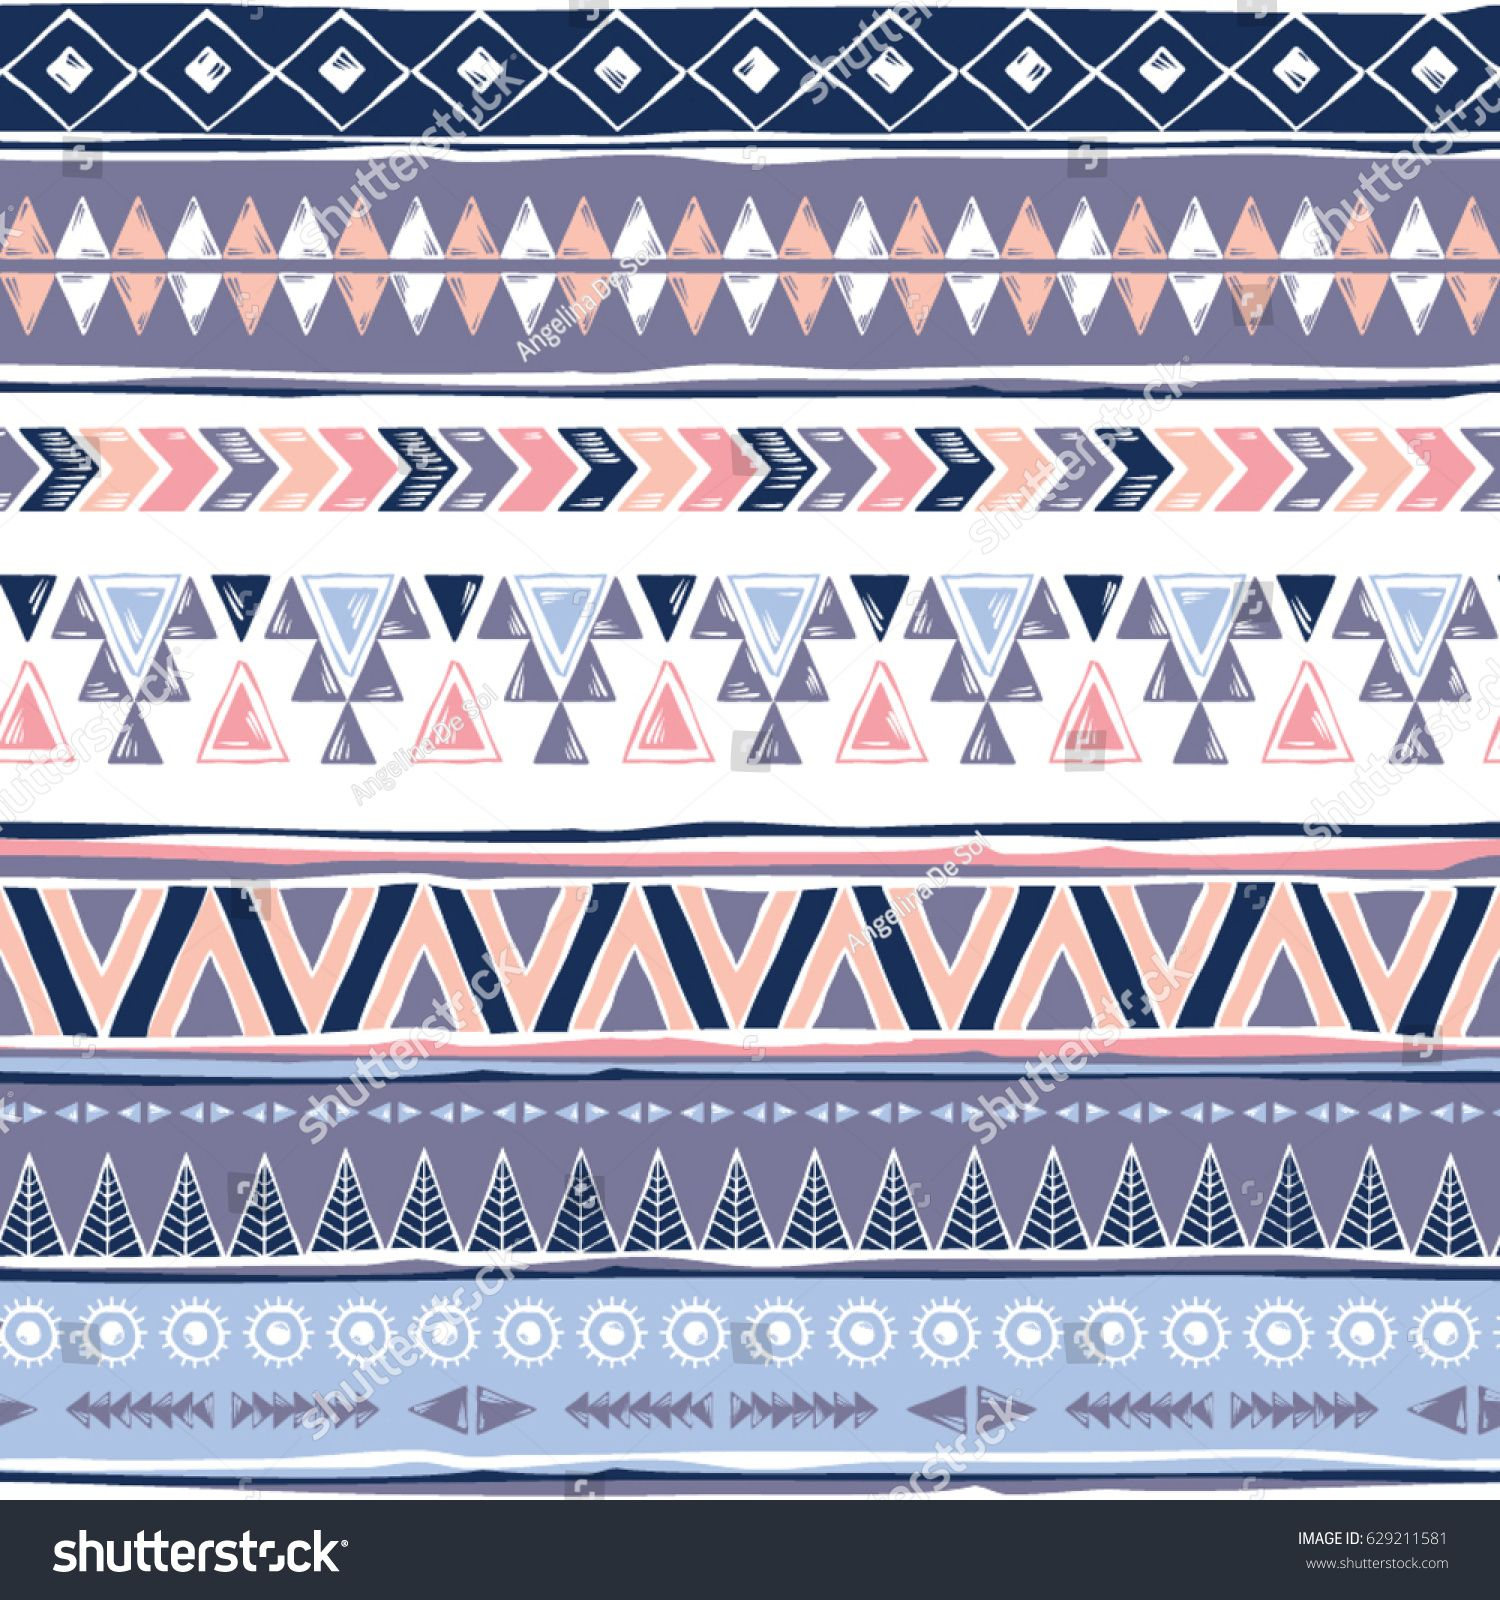 Tribal 8x10 FT Photo Backdrops,Geometric Motifs Pattern Vertical Striped Background Native American Design Background for Child Baby Shower Photo Vinyl Studio Prop Photobooth Photoshoot Multicolor